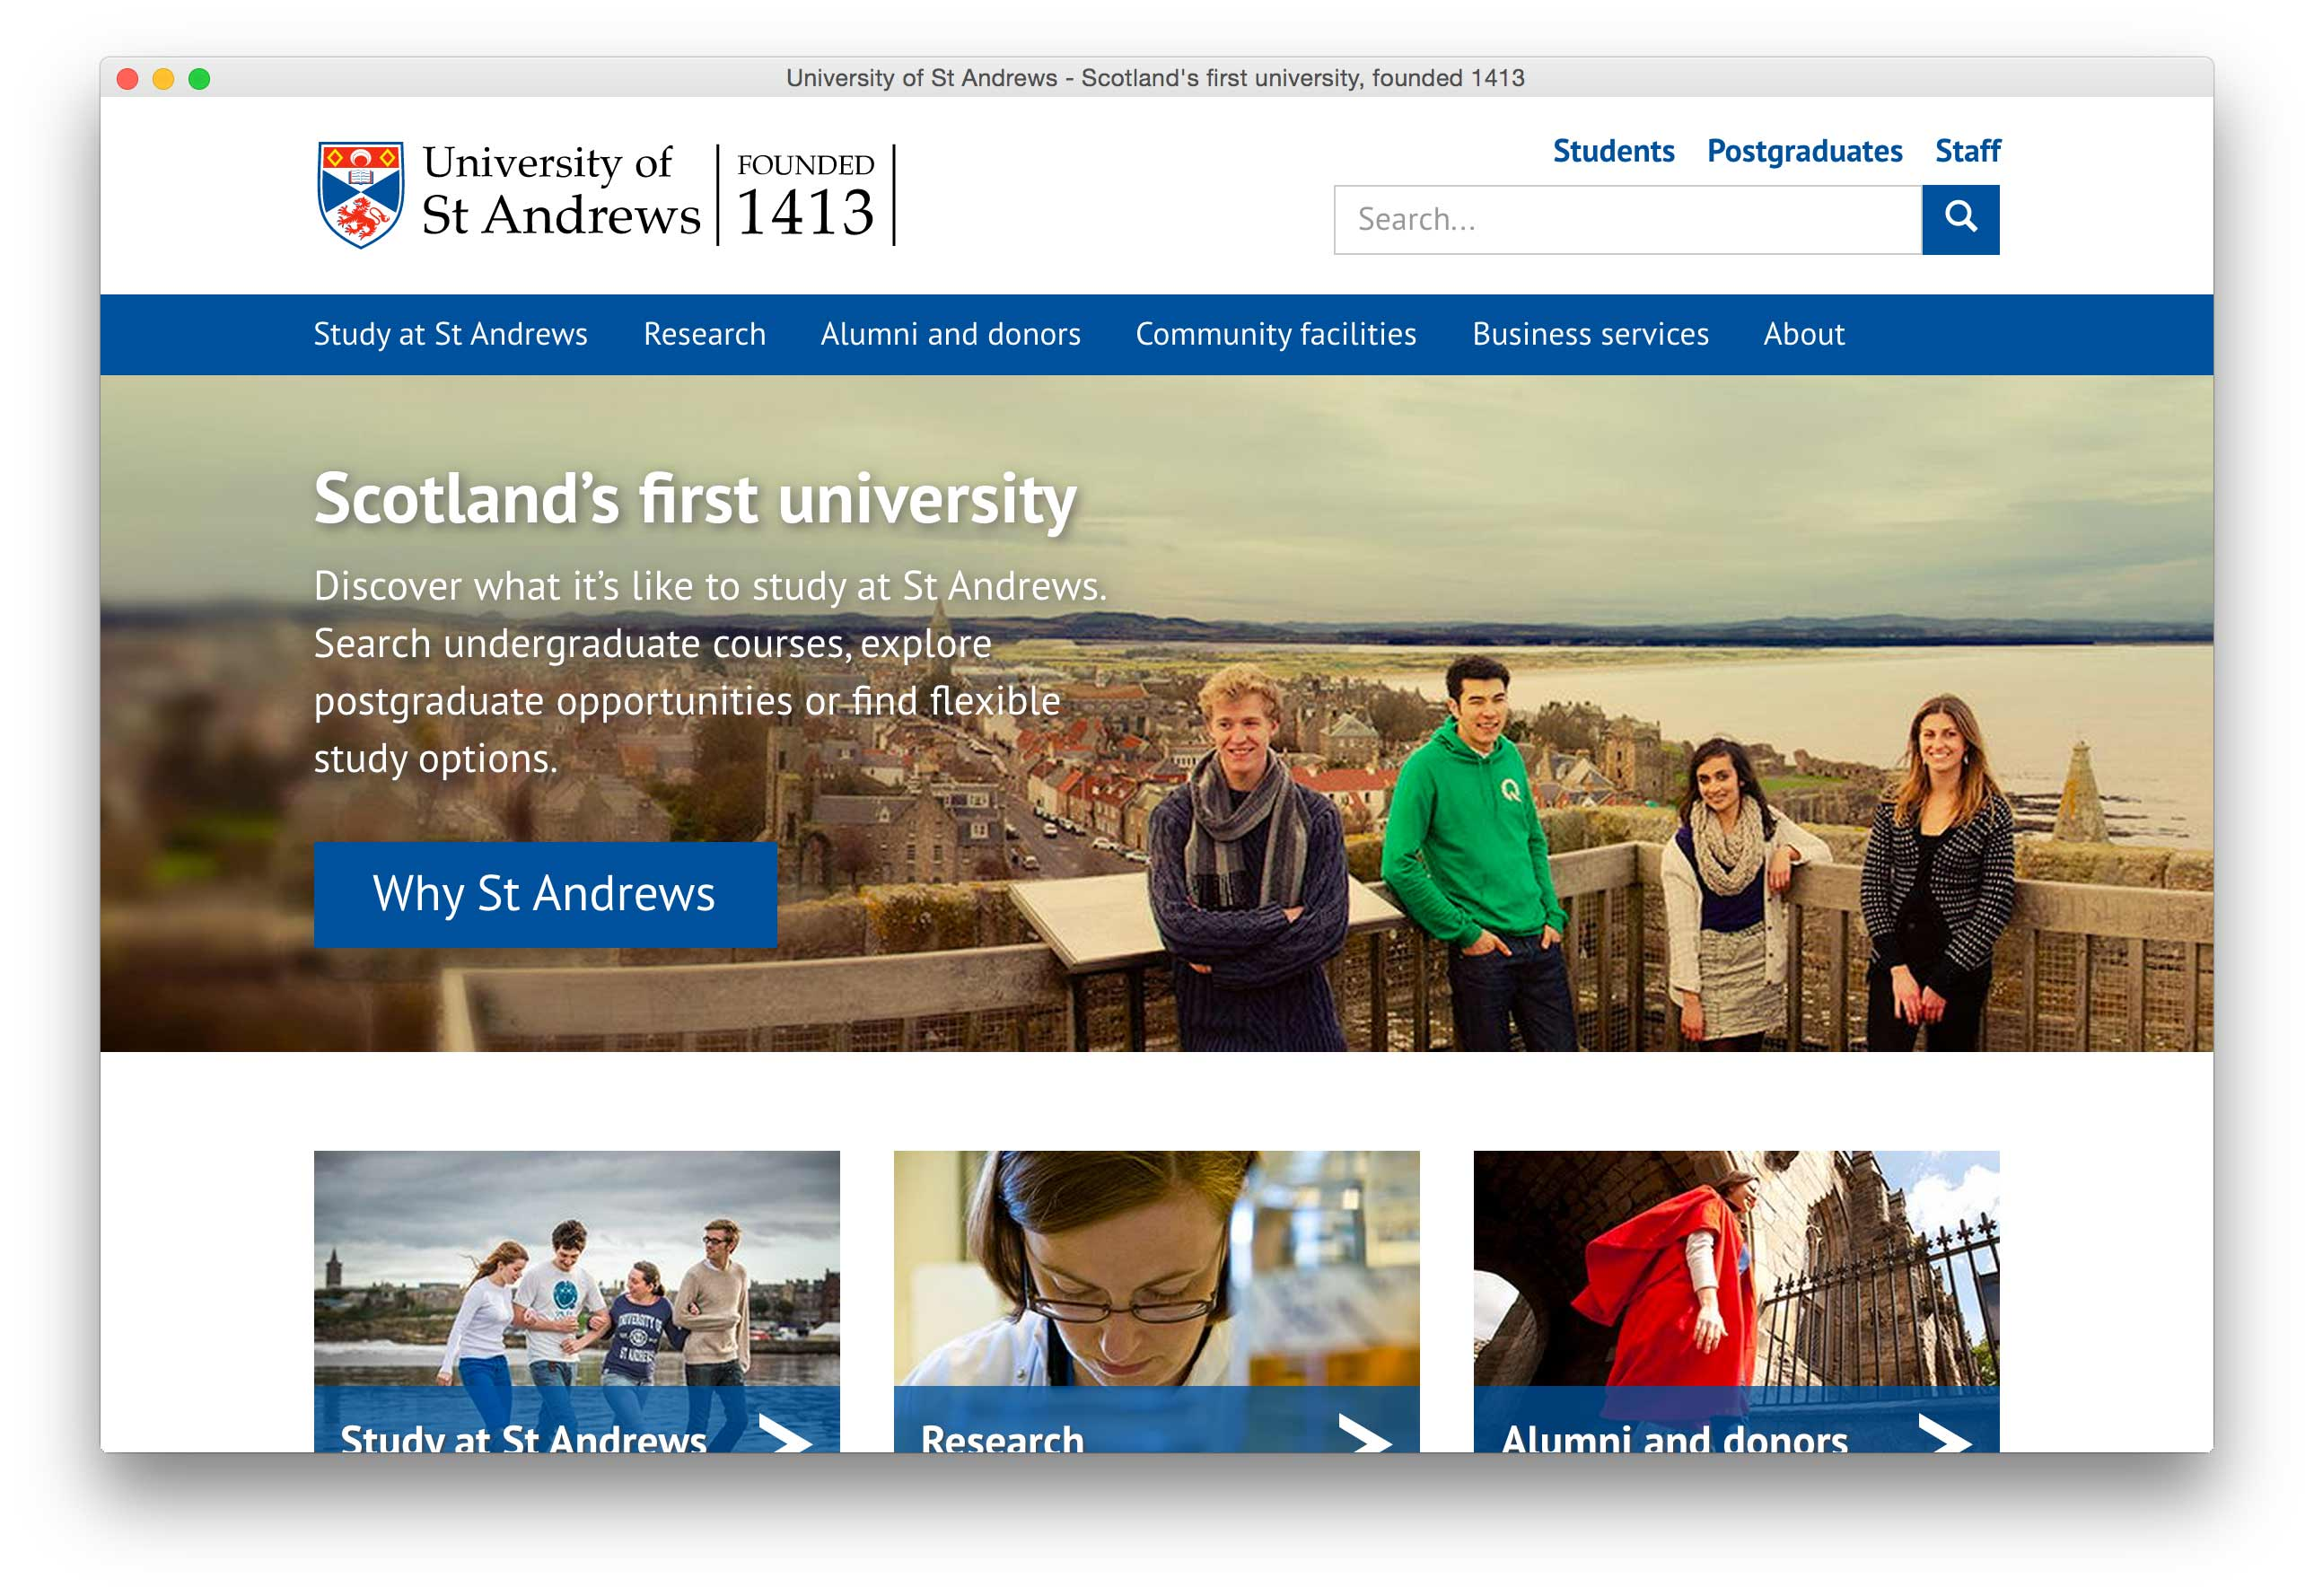 Image of the University of St Andrews home page (desktop).